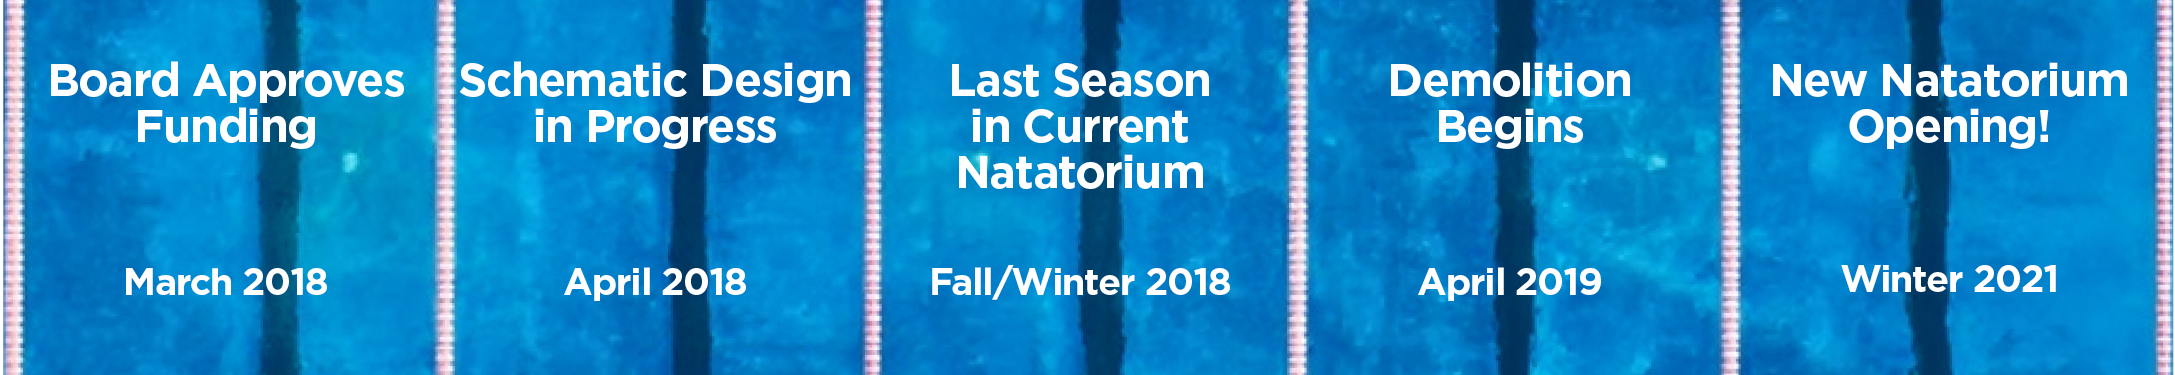 TIMELINE: March 2018, Board Approves Funding. April 2018, Schematic Design in Progress. Fall/Winter 2018-19, Last Season in Current Natatorium. April 2019, Demolition Begins. Winter 2021, New Natatorium Opening!